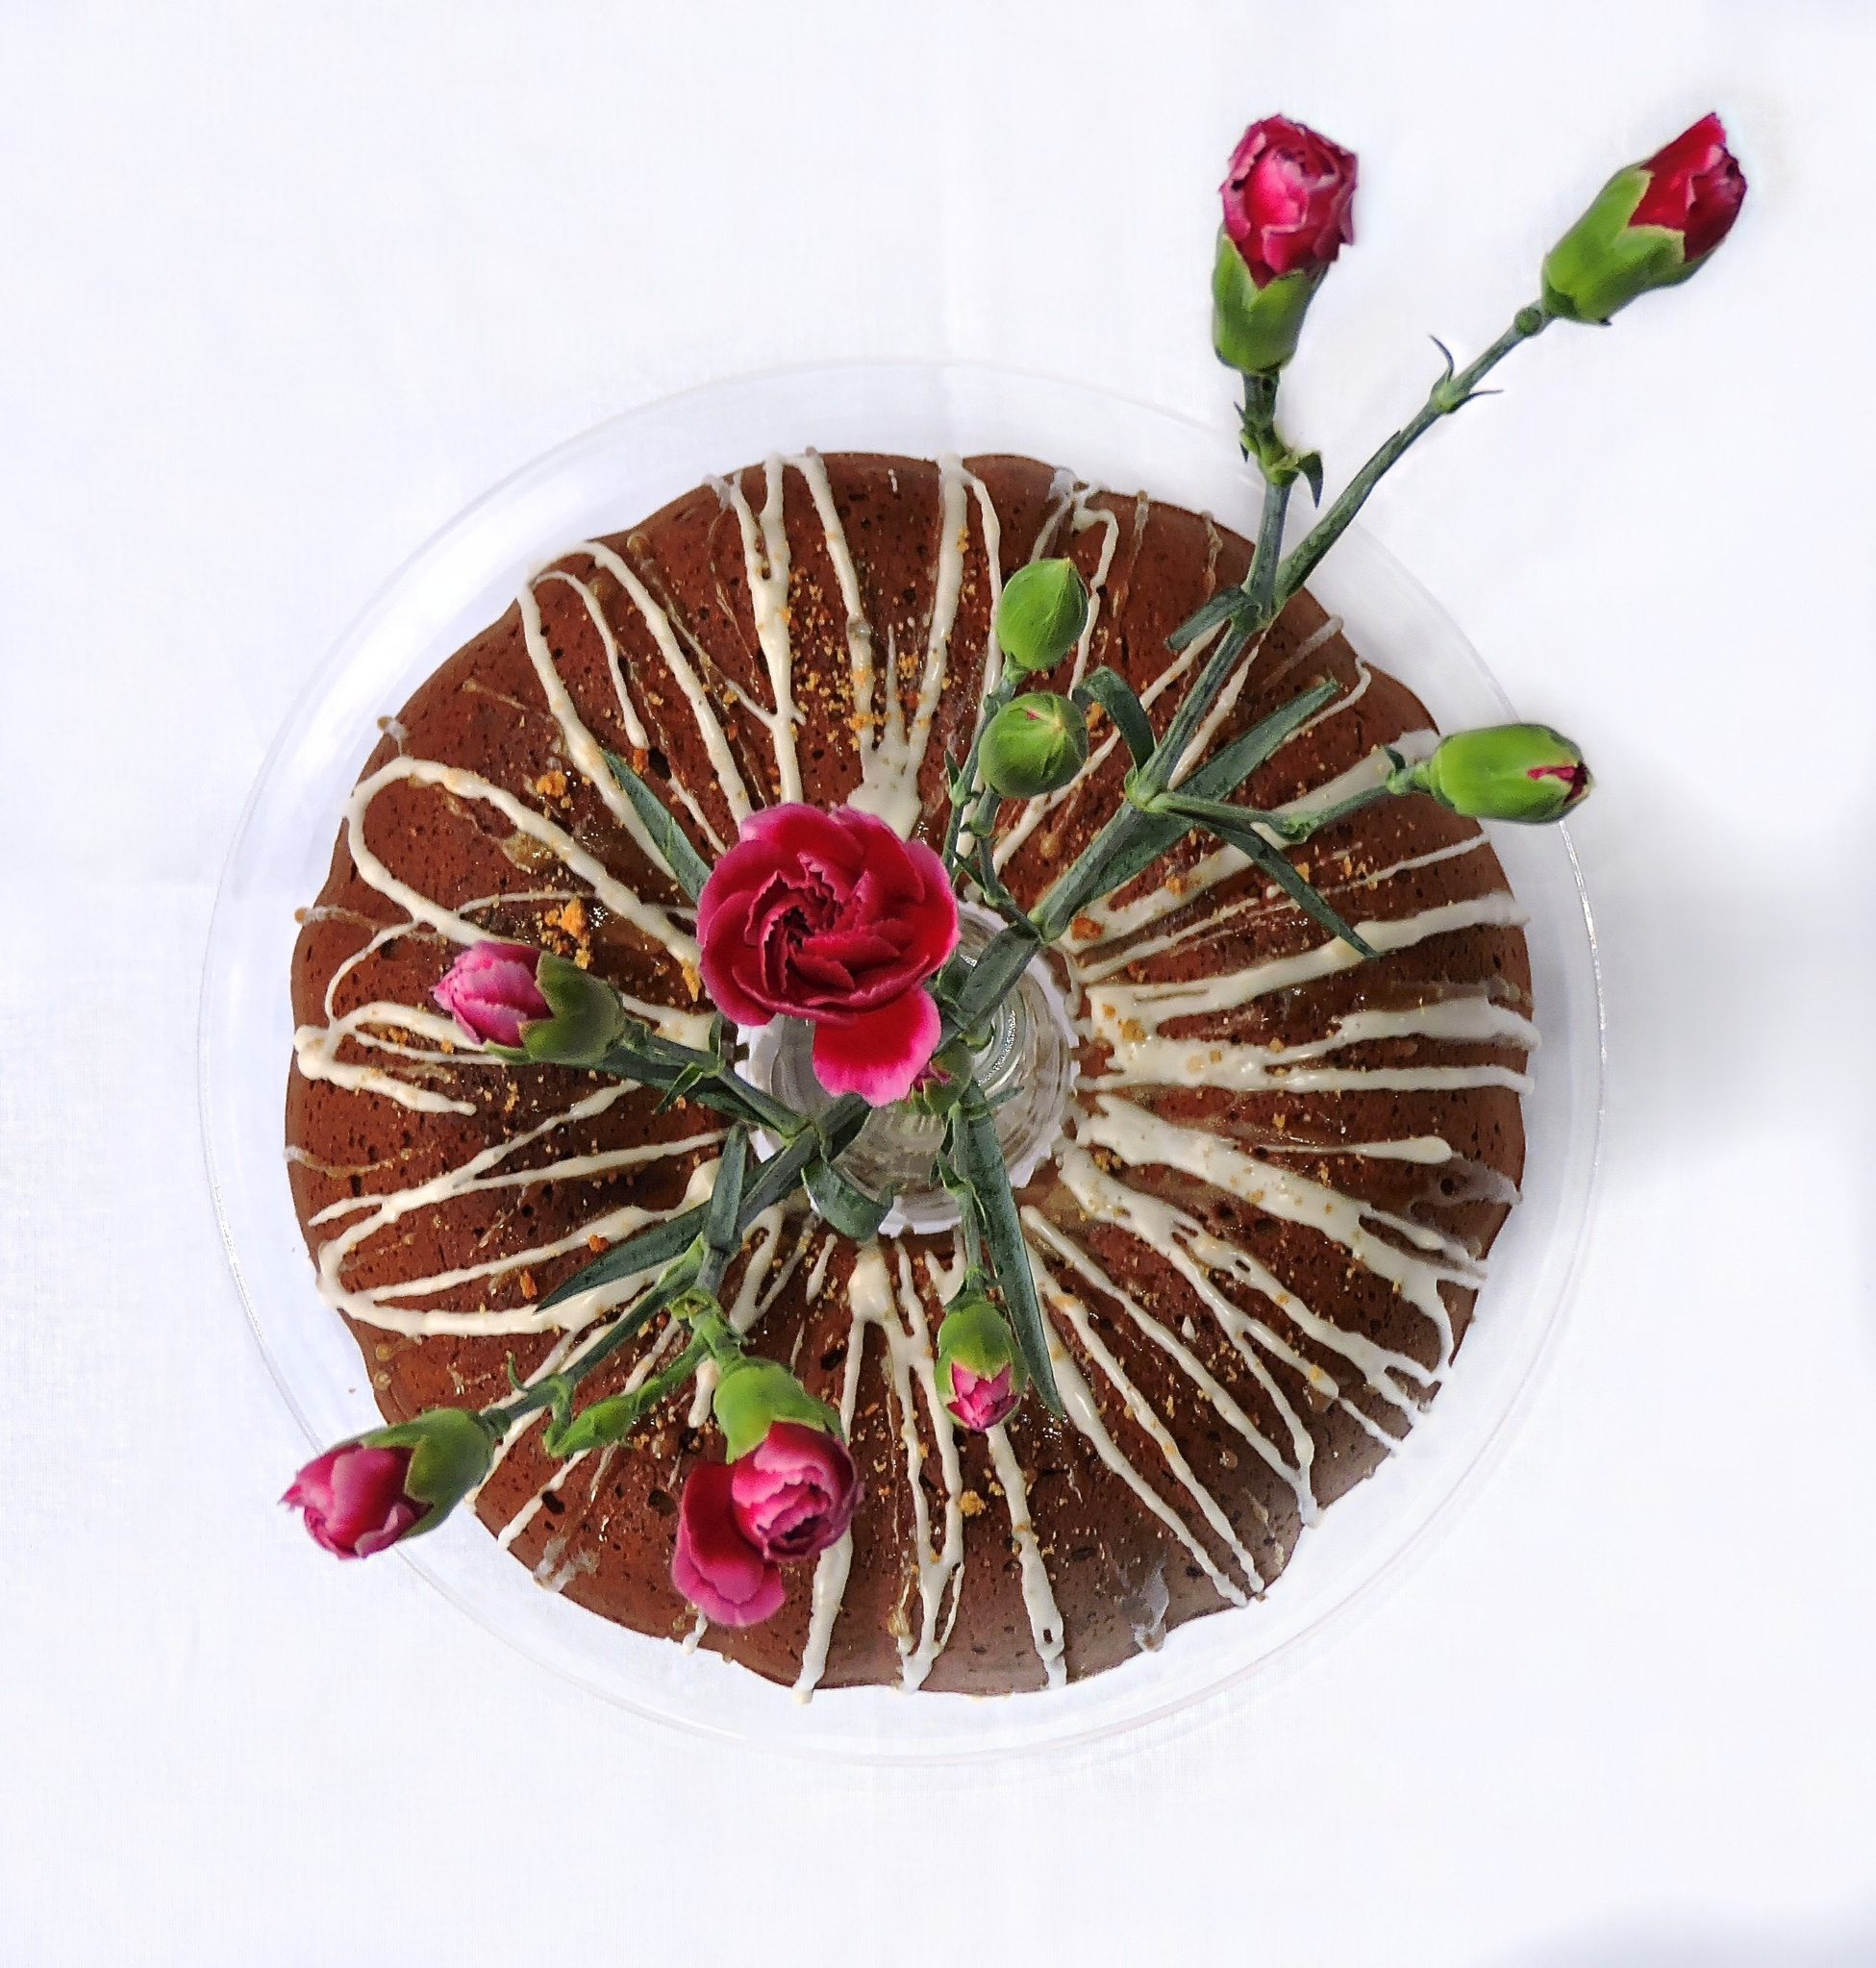 Coffee Bundt Cake With In The Middle